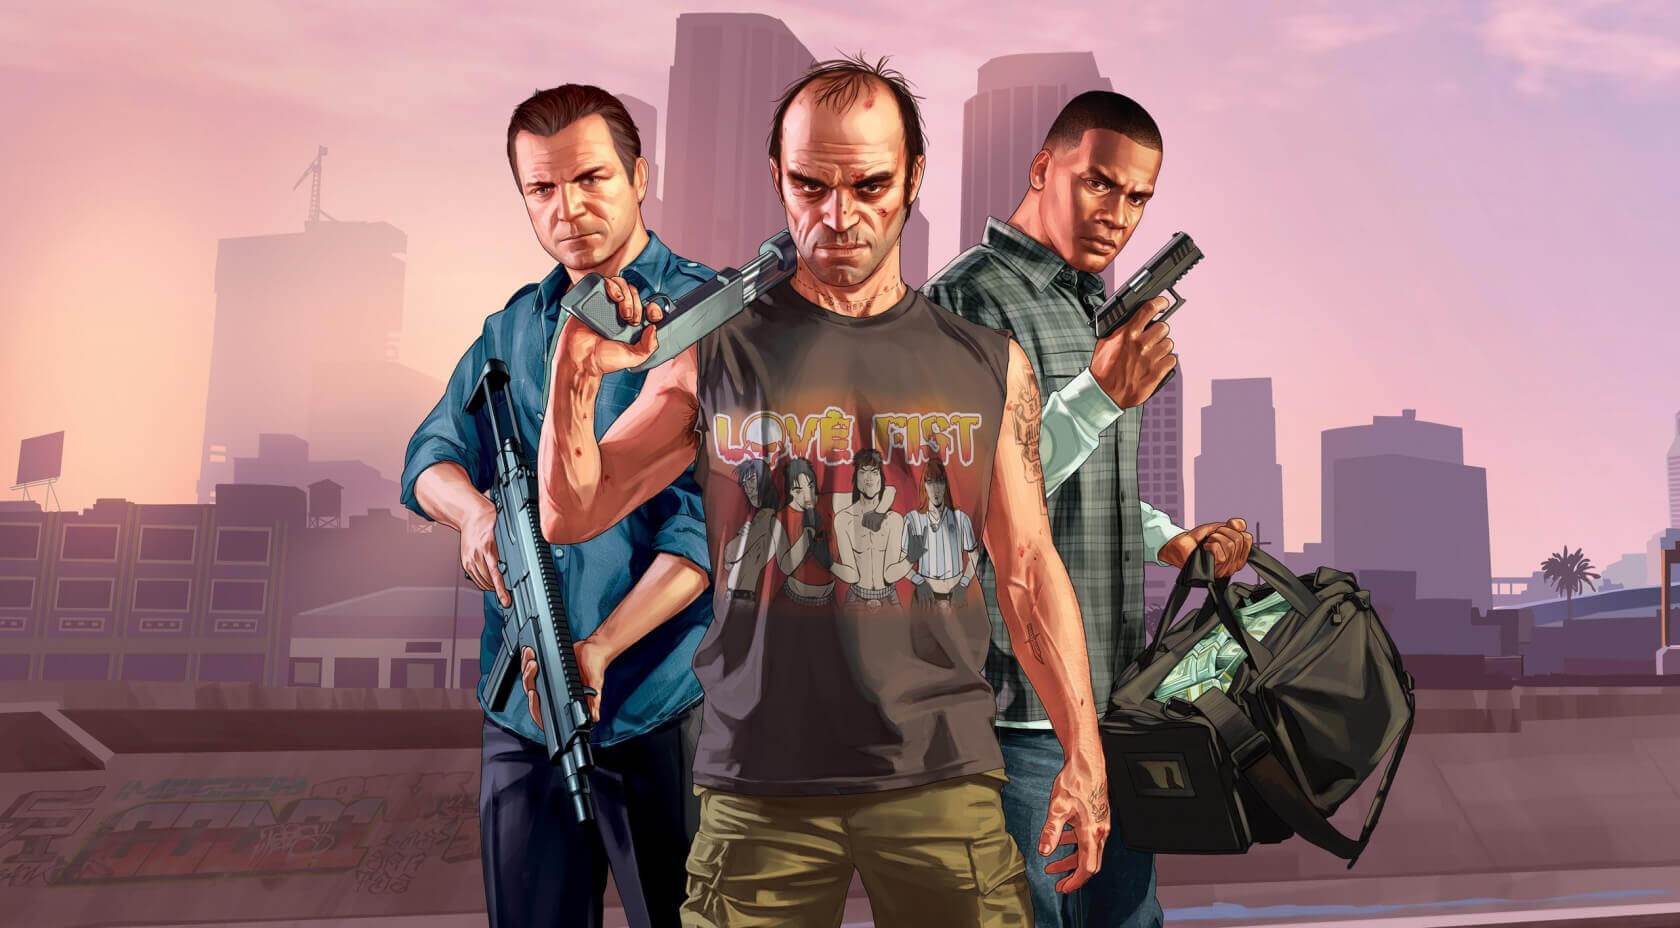 GTA V has sold over 115 million copies